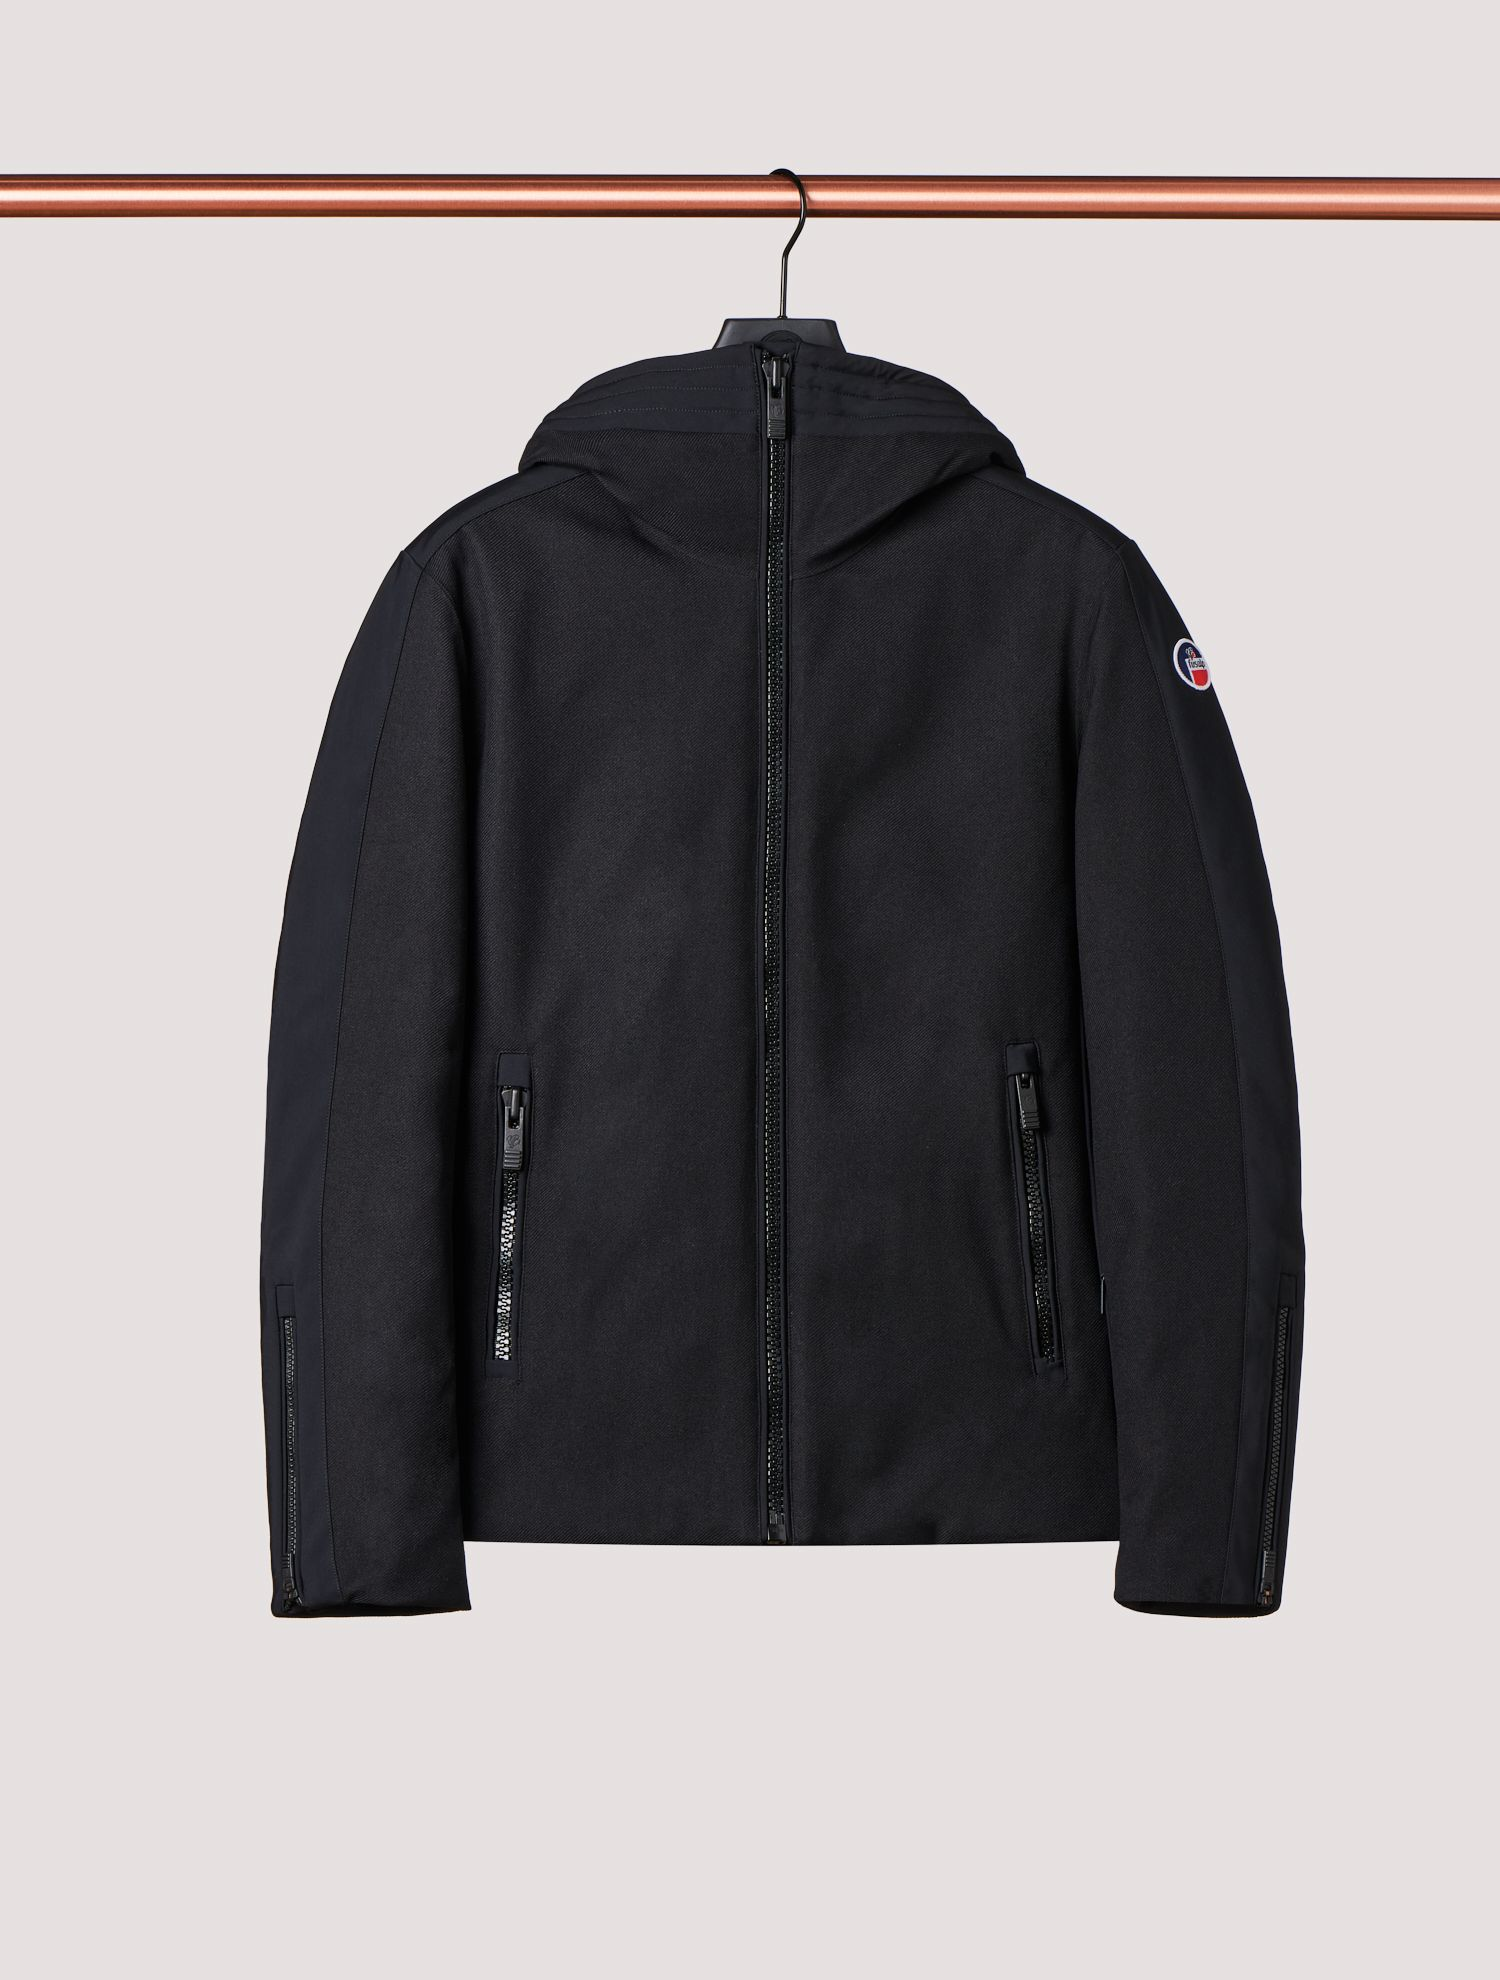 COMING SOON - W DUNCAN JACKET